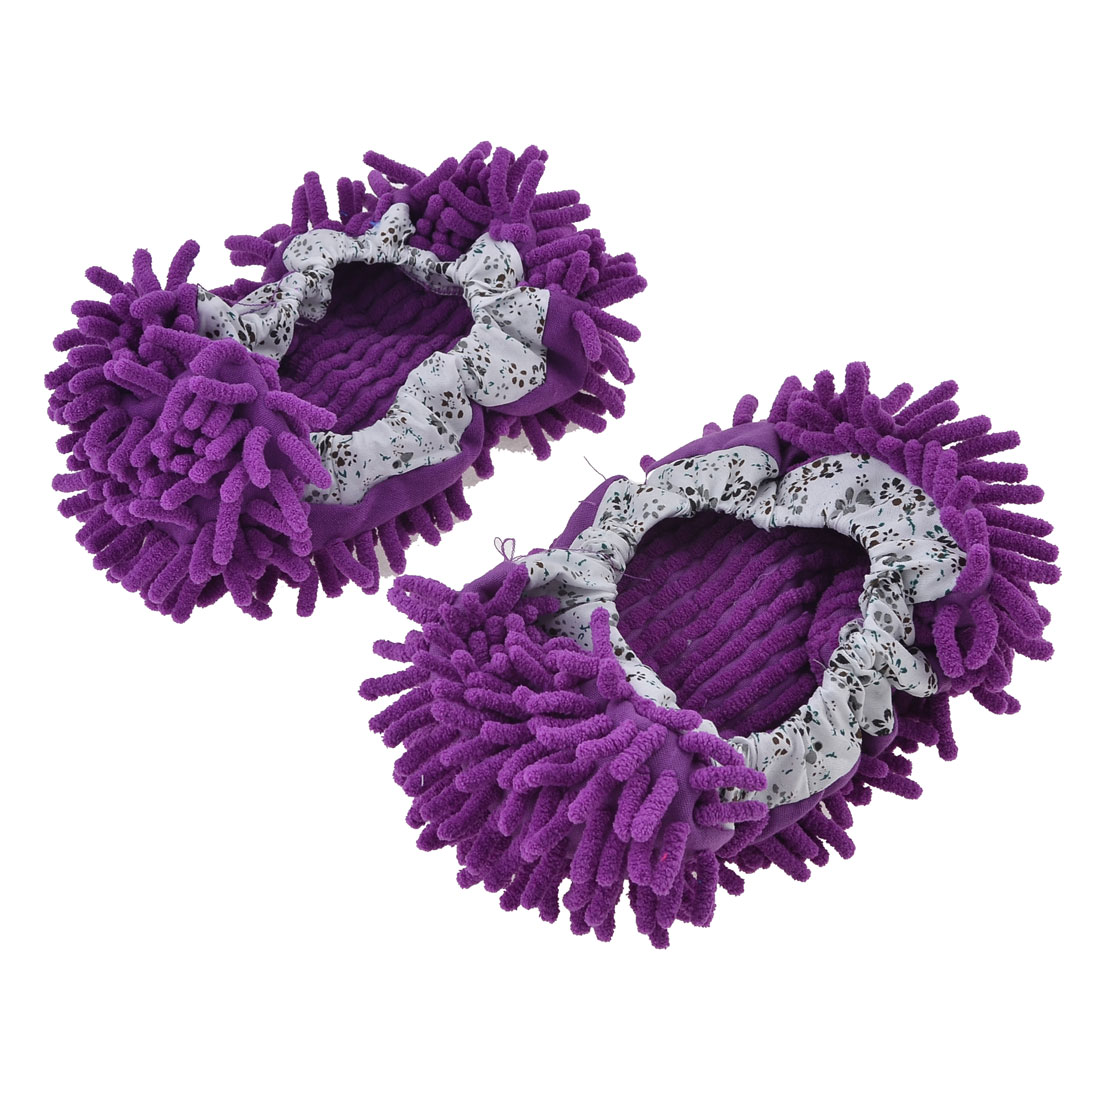 2pcs Home Floor Polished Dust Cleaning Foot Socks Shoes Mop Slippers Purple